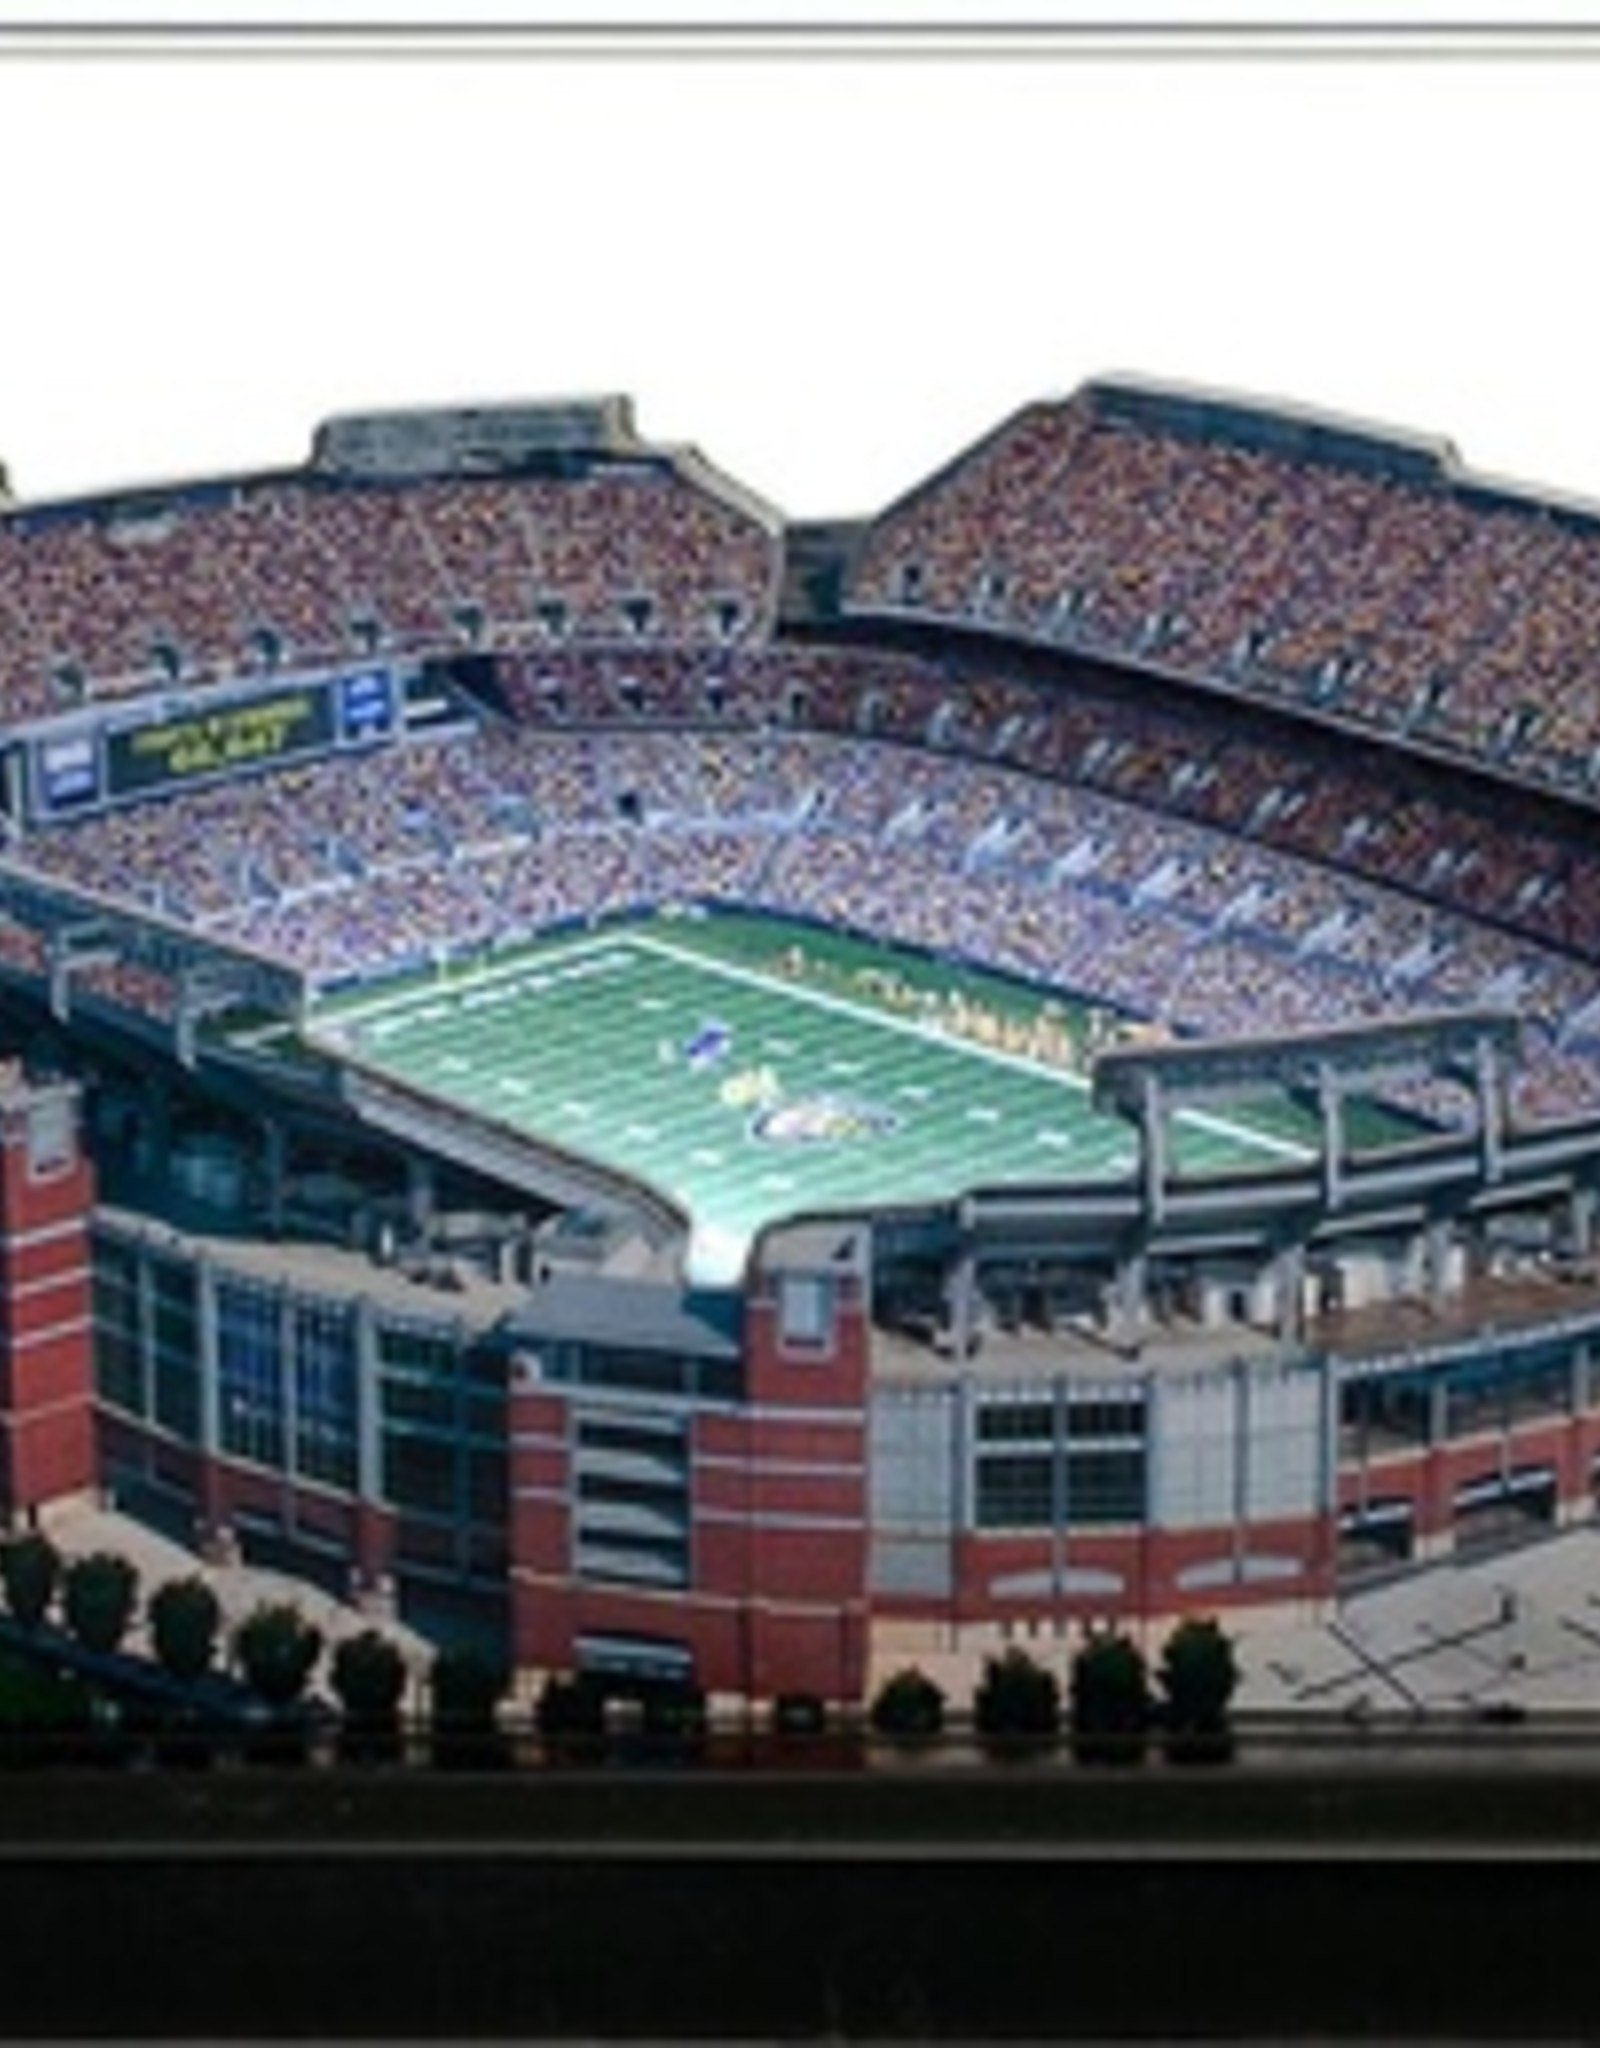 HOMEFIELDS Baltimore Ravens 19IN Lighted Replica M&T Bank Stadium